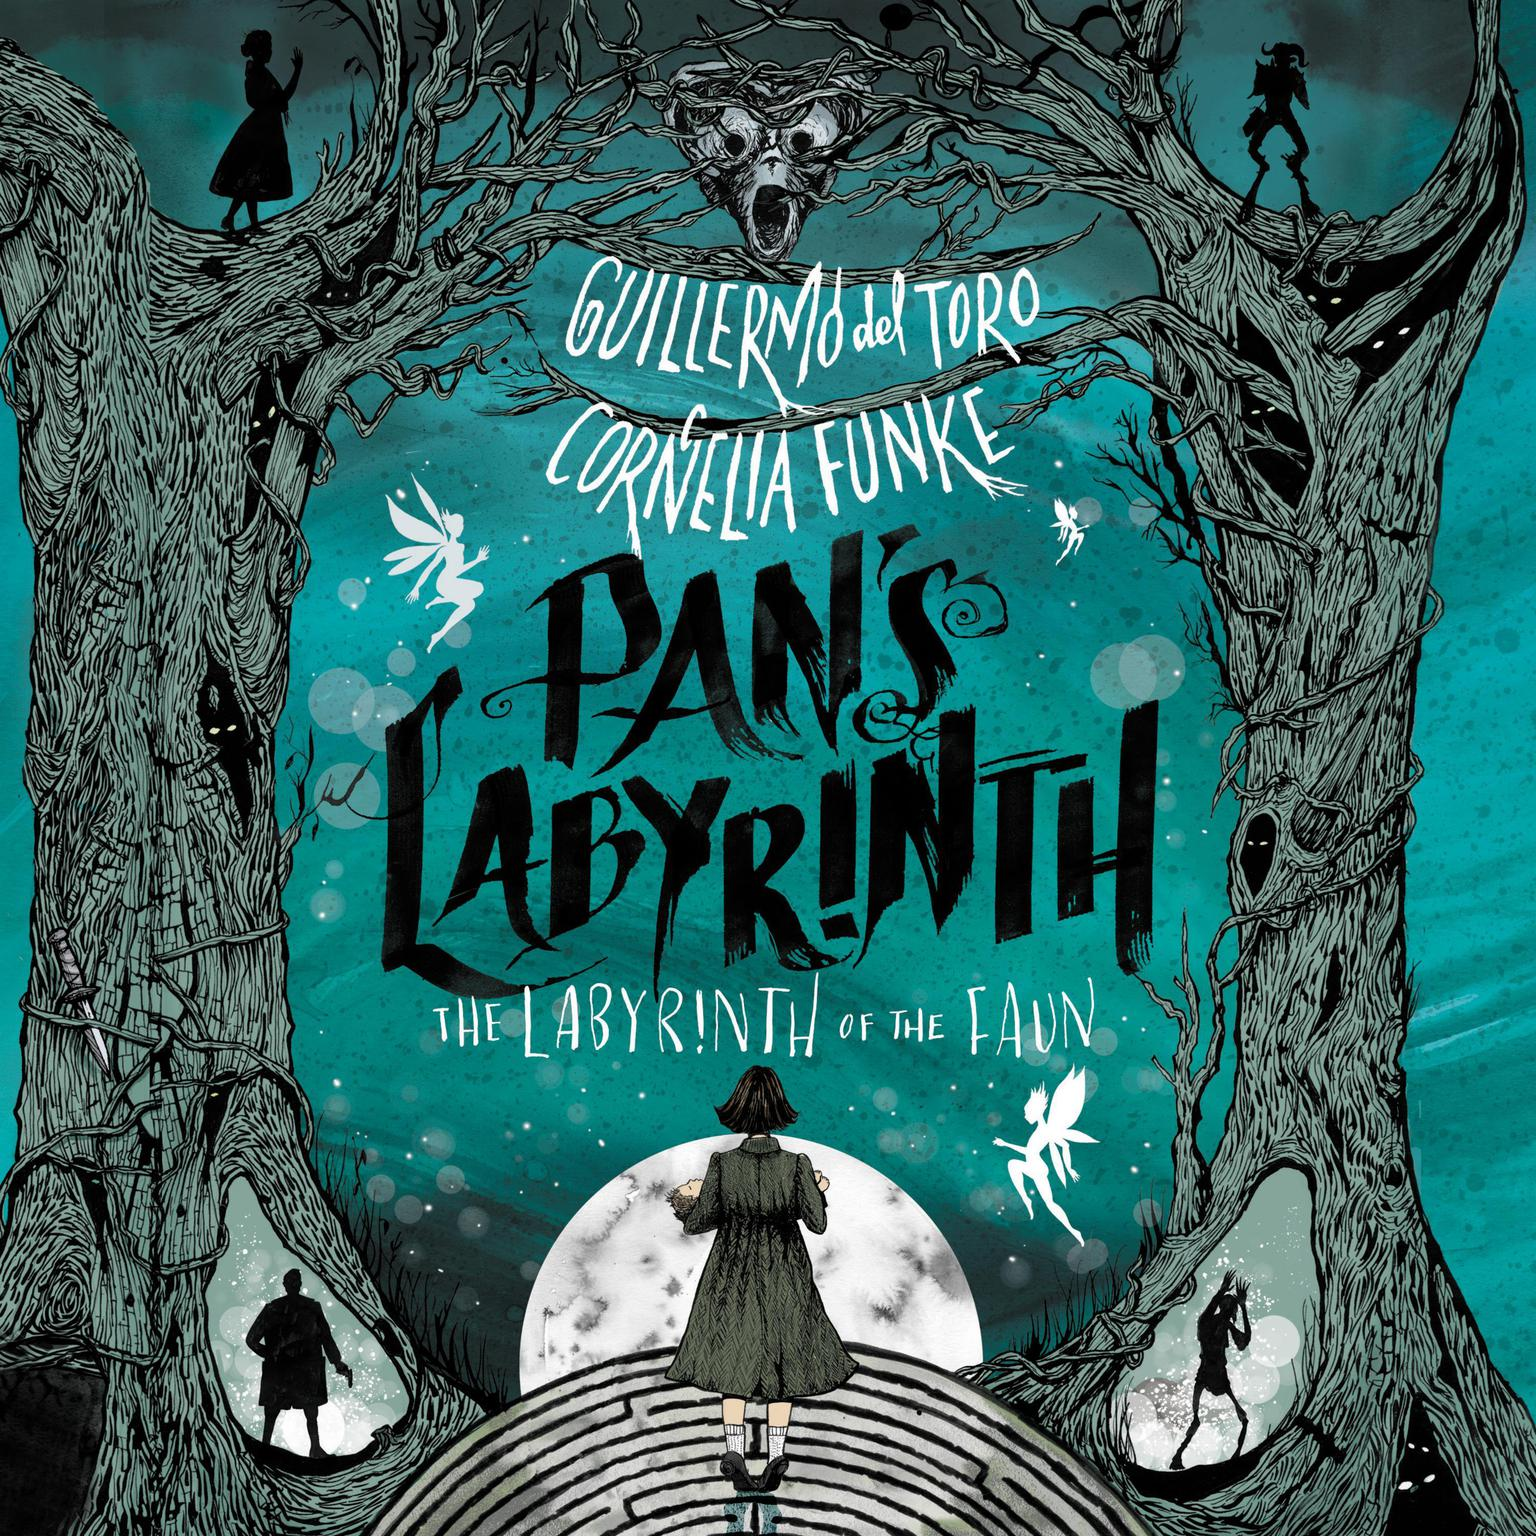 Pans Labyrinth: The Labyrinth of the Faun: The Labyrinth of the Faun Audiobook, by Guillermo del Toro